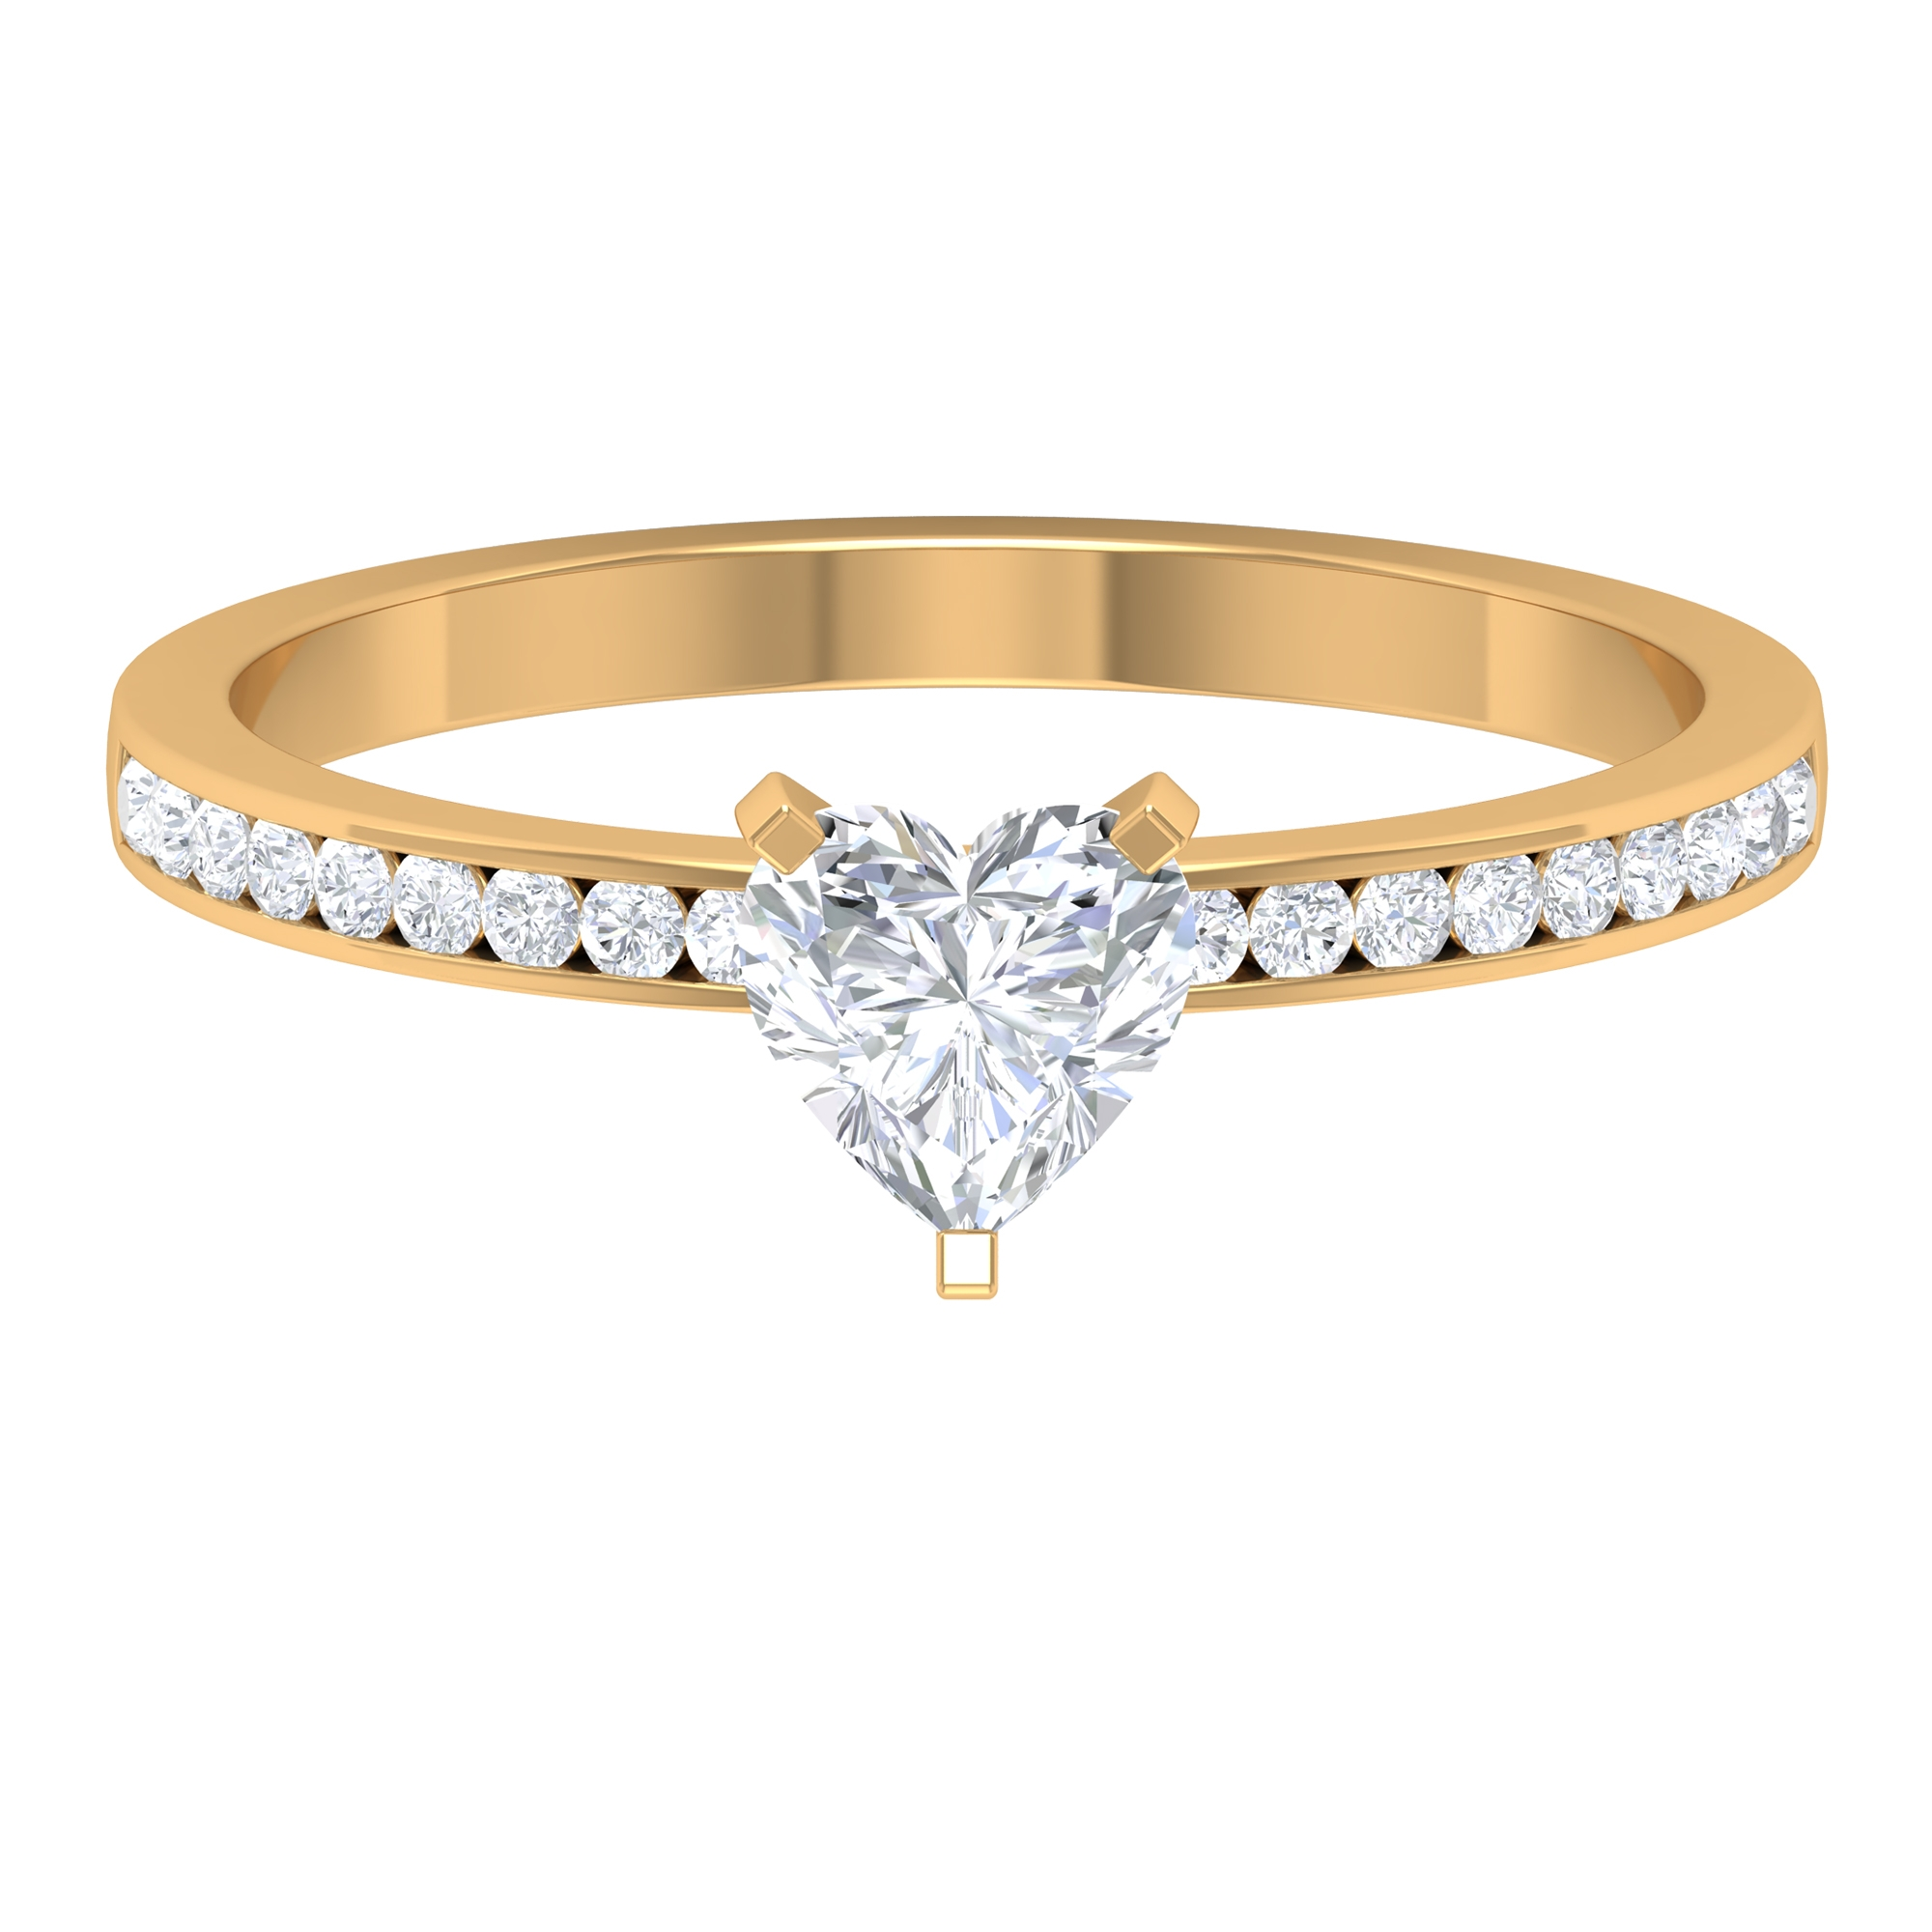 3/4 CT Heart Diamond Solitaire Ring in 3 Prong Peg Head Setting with Channel Set Side Stones